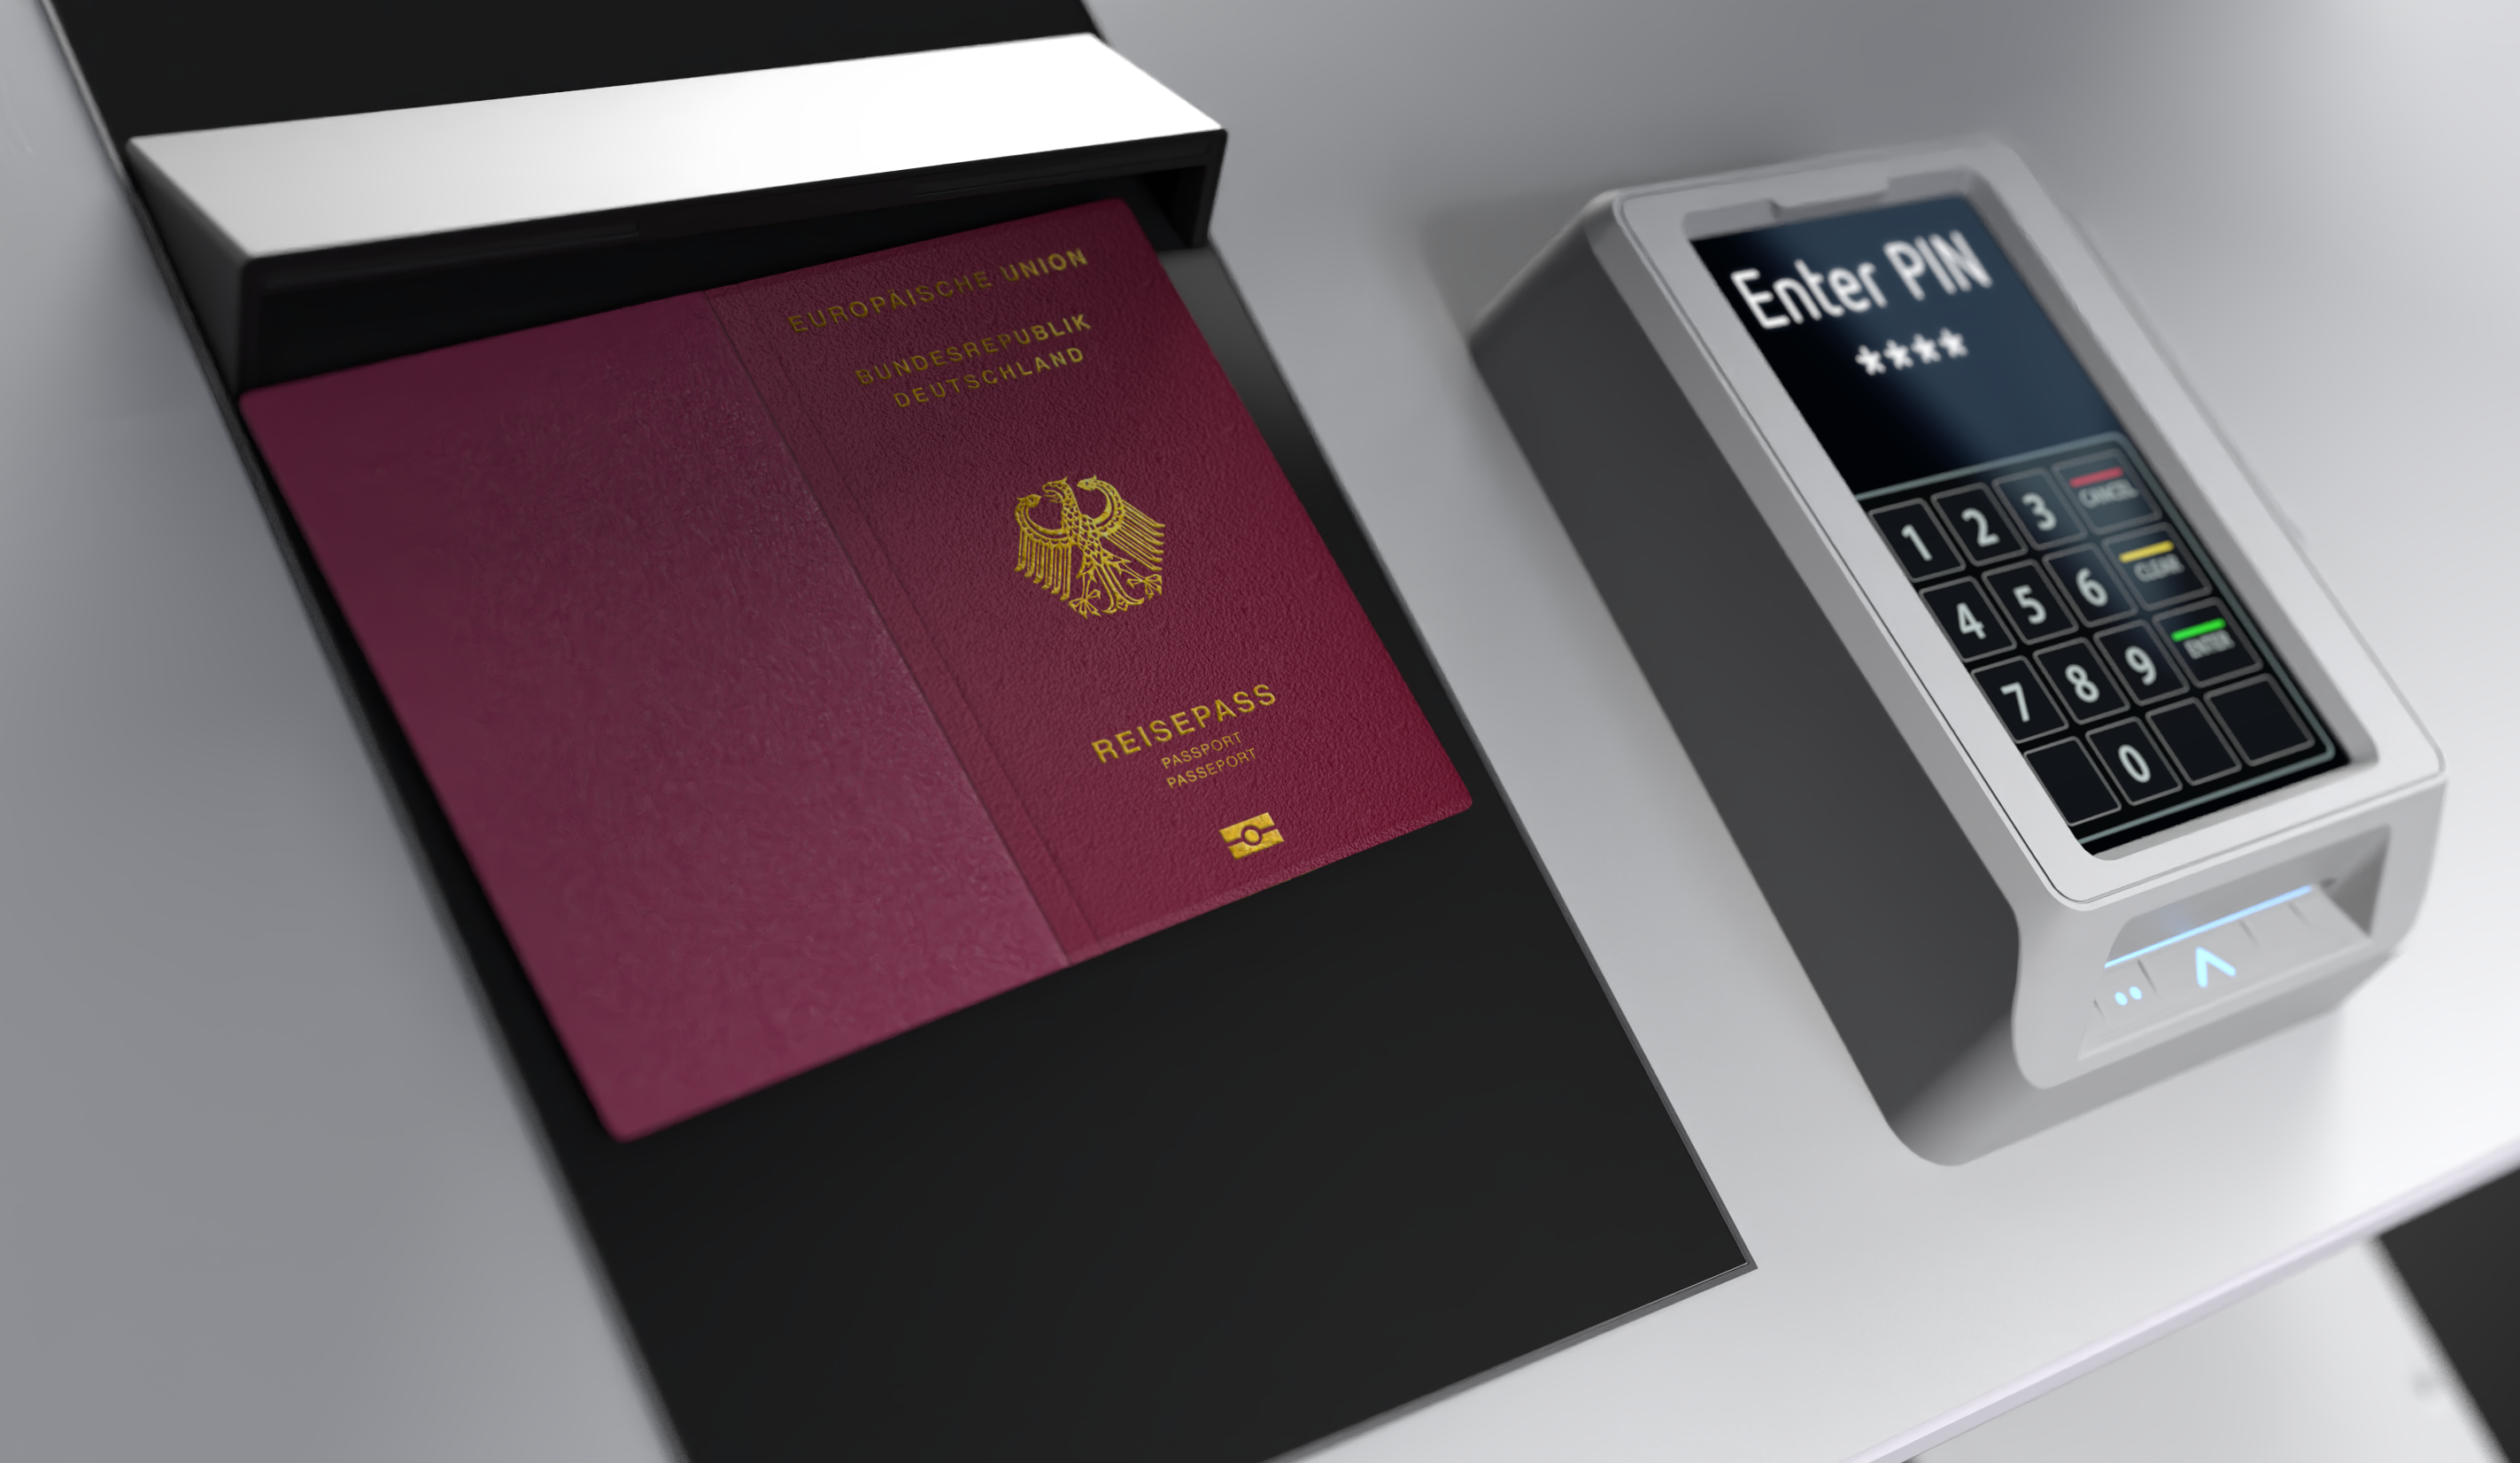 A close up of the Infrafon Dispenser passport scanner and keypad with payment option